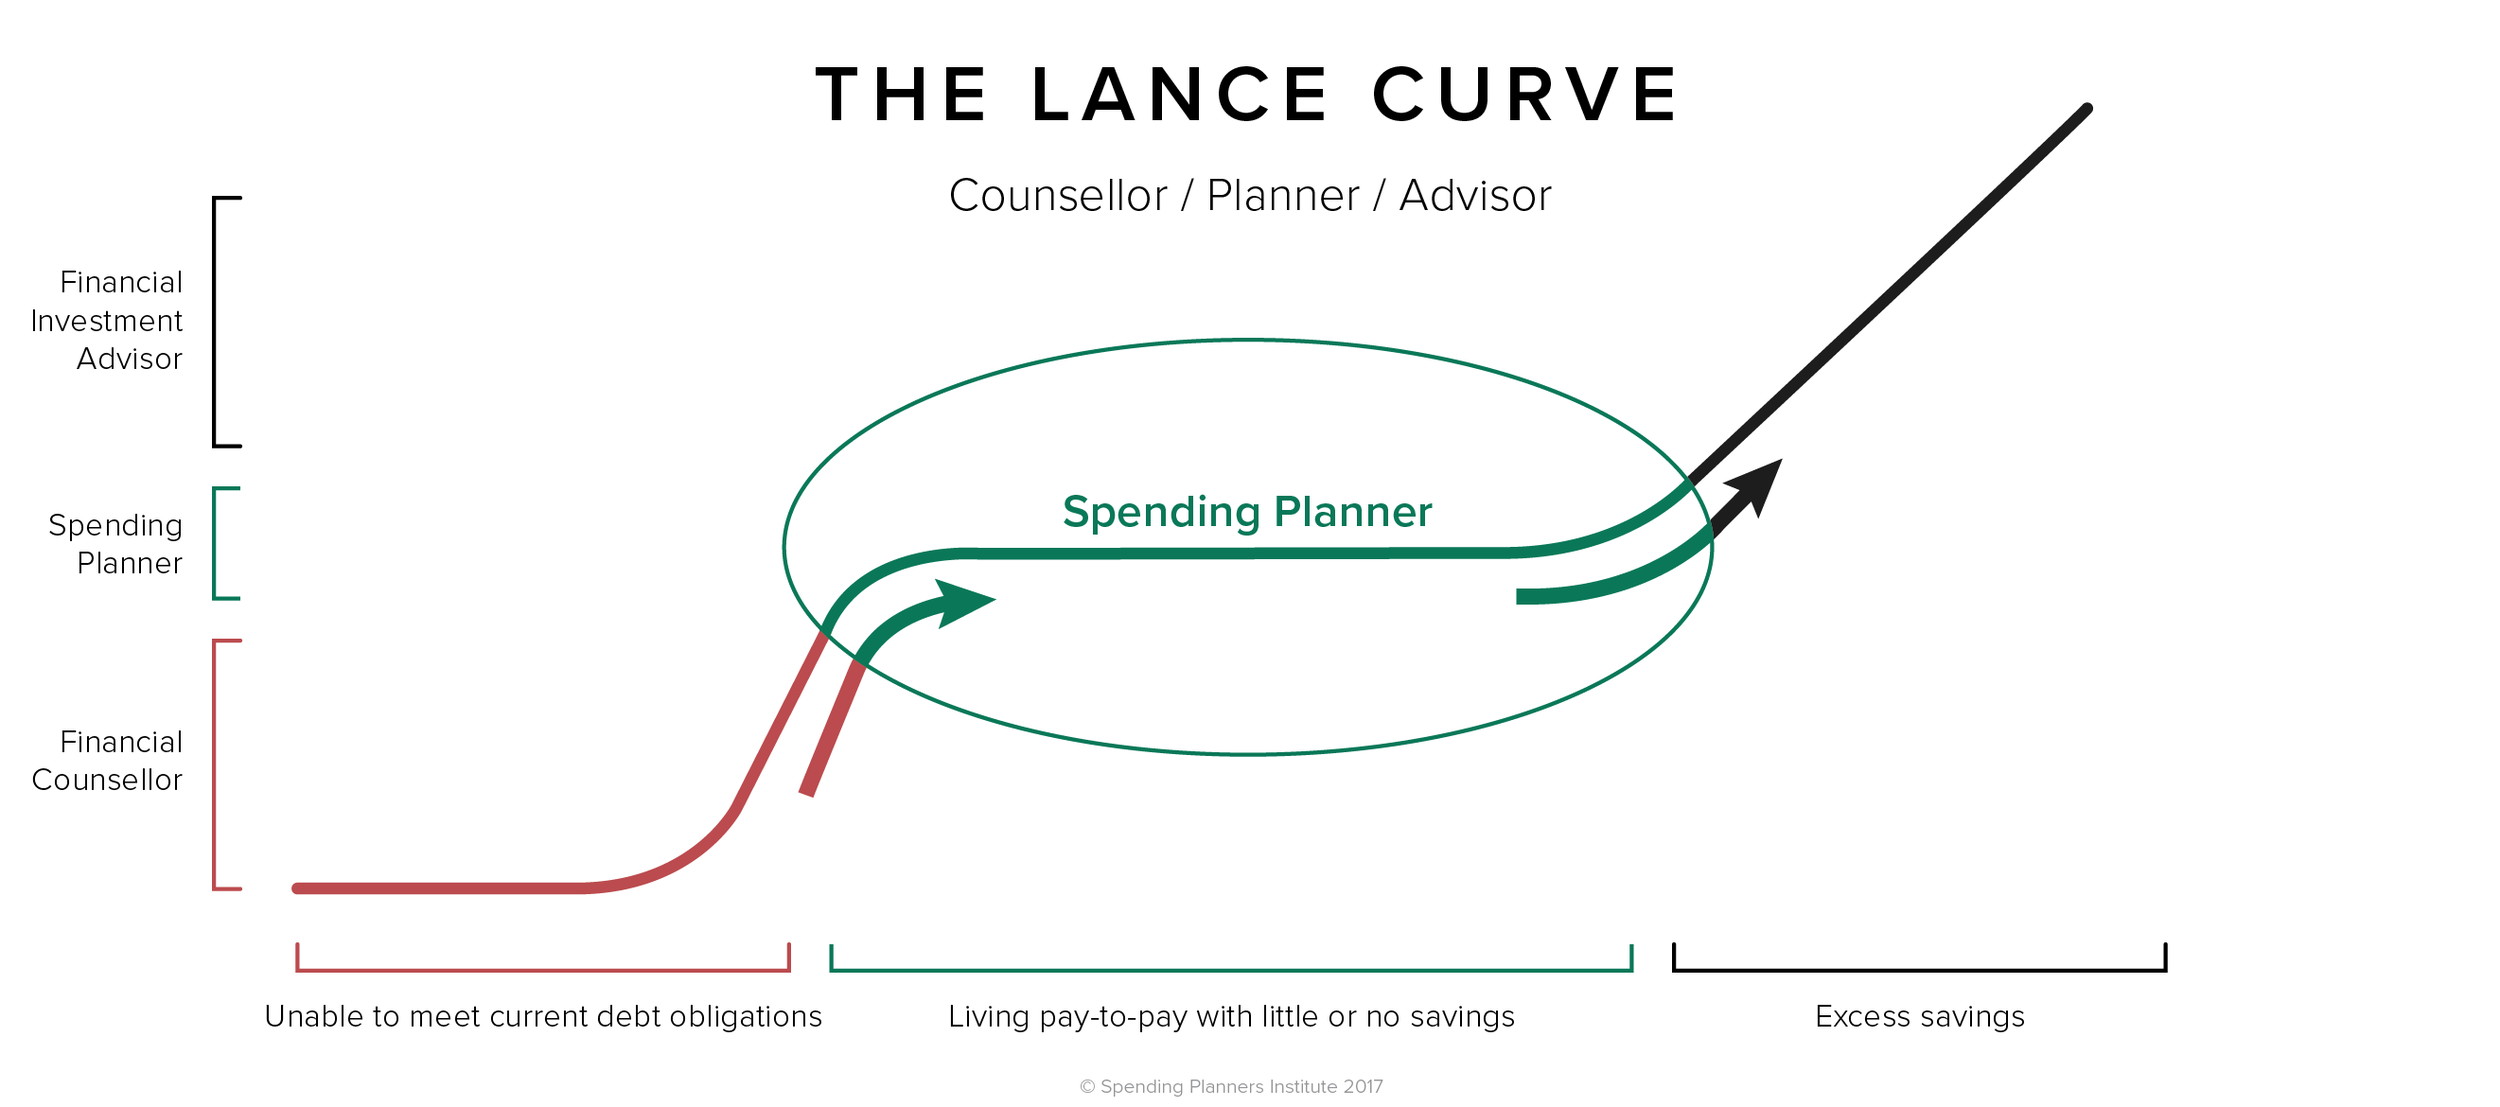 The Lance Curve shows clearly where we fit into the team - enlarge the image to see how.